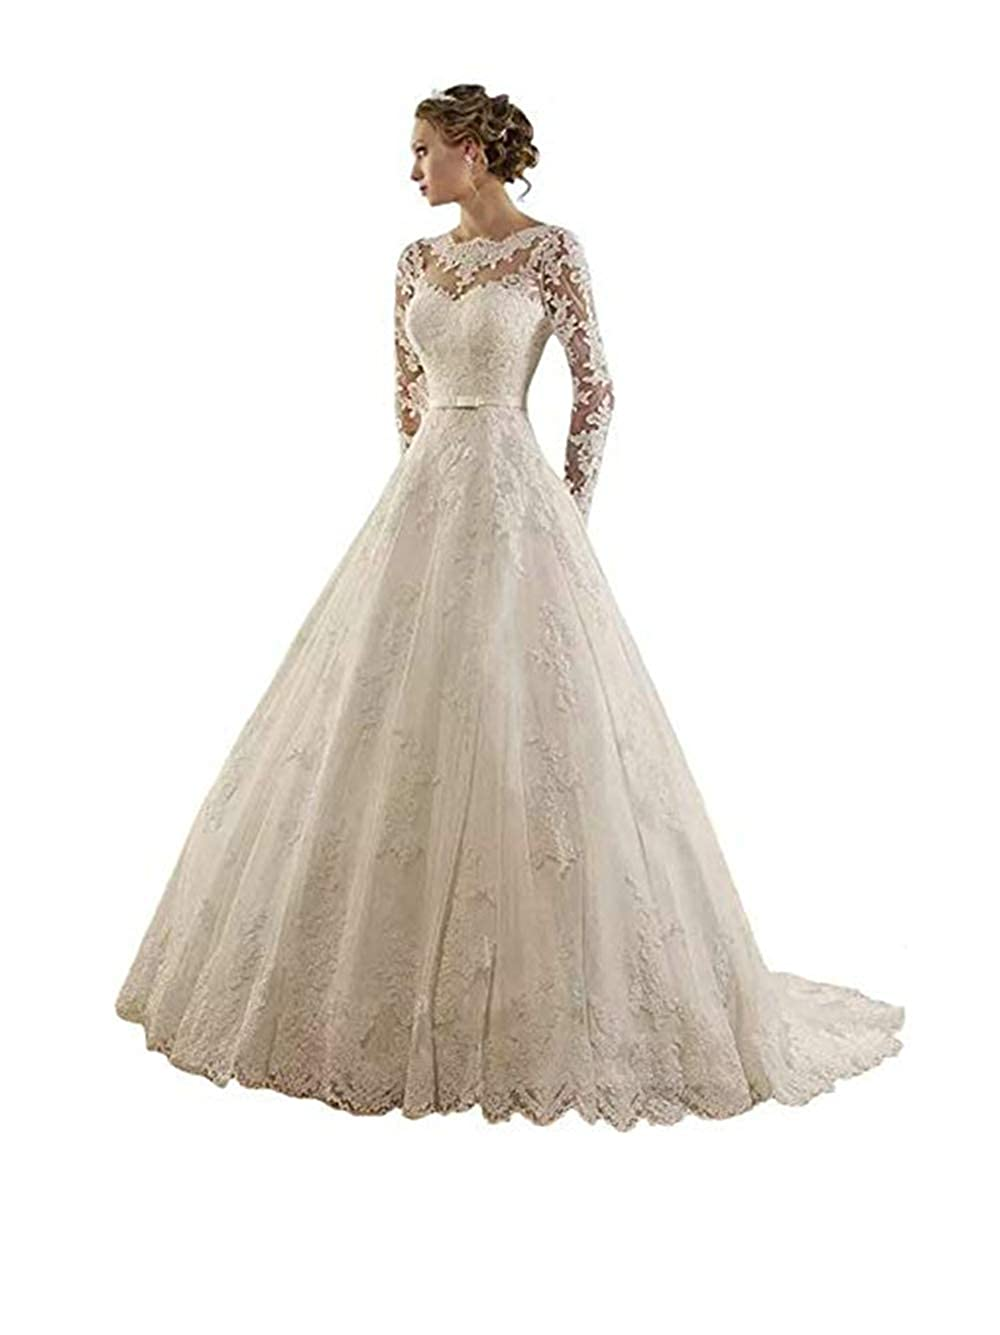 01white PROMNOVAS Women's V Neck Long Sleeves Appliques Bridal Gowns Aline Prom Gown